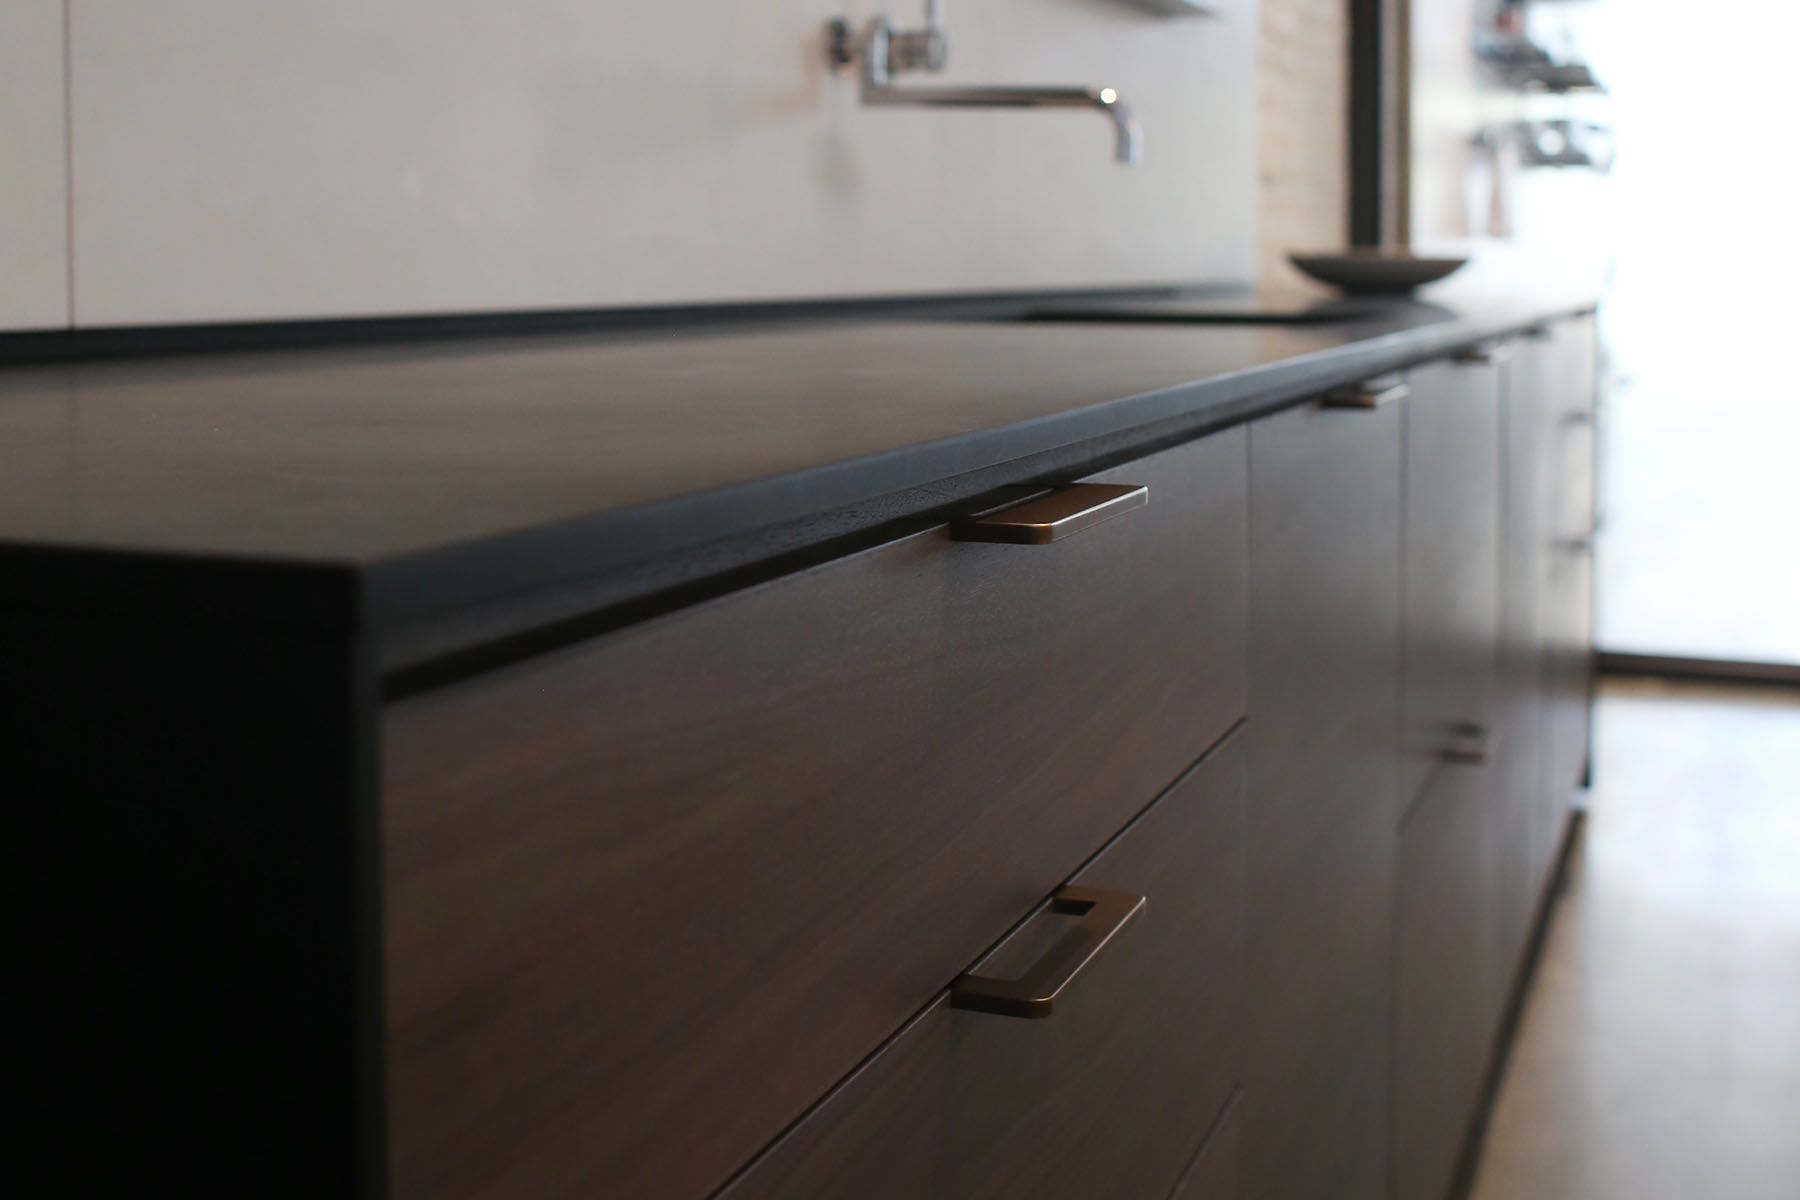 Henrybuilt drawer Pulls